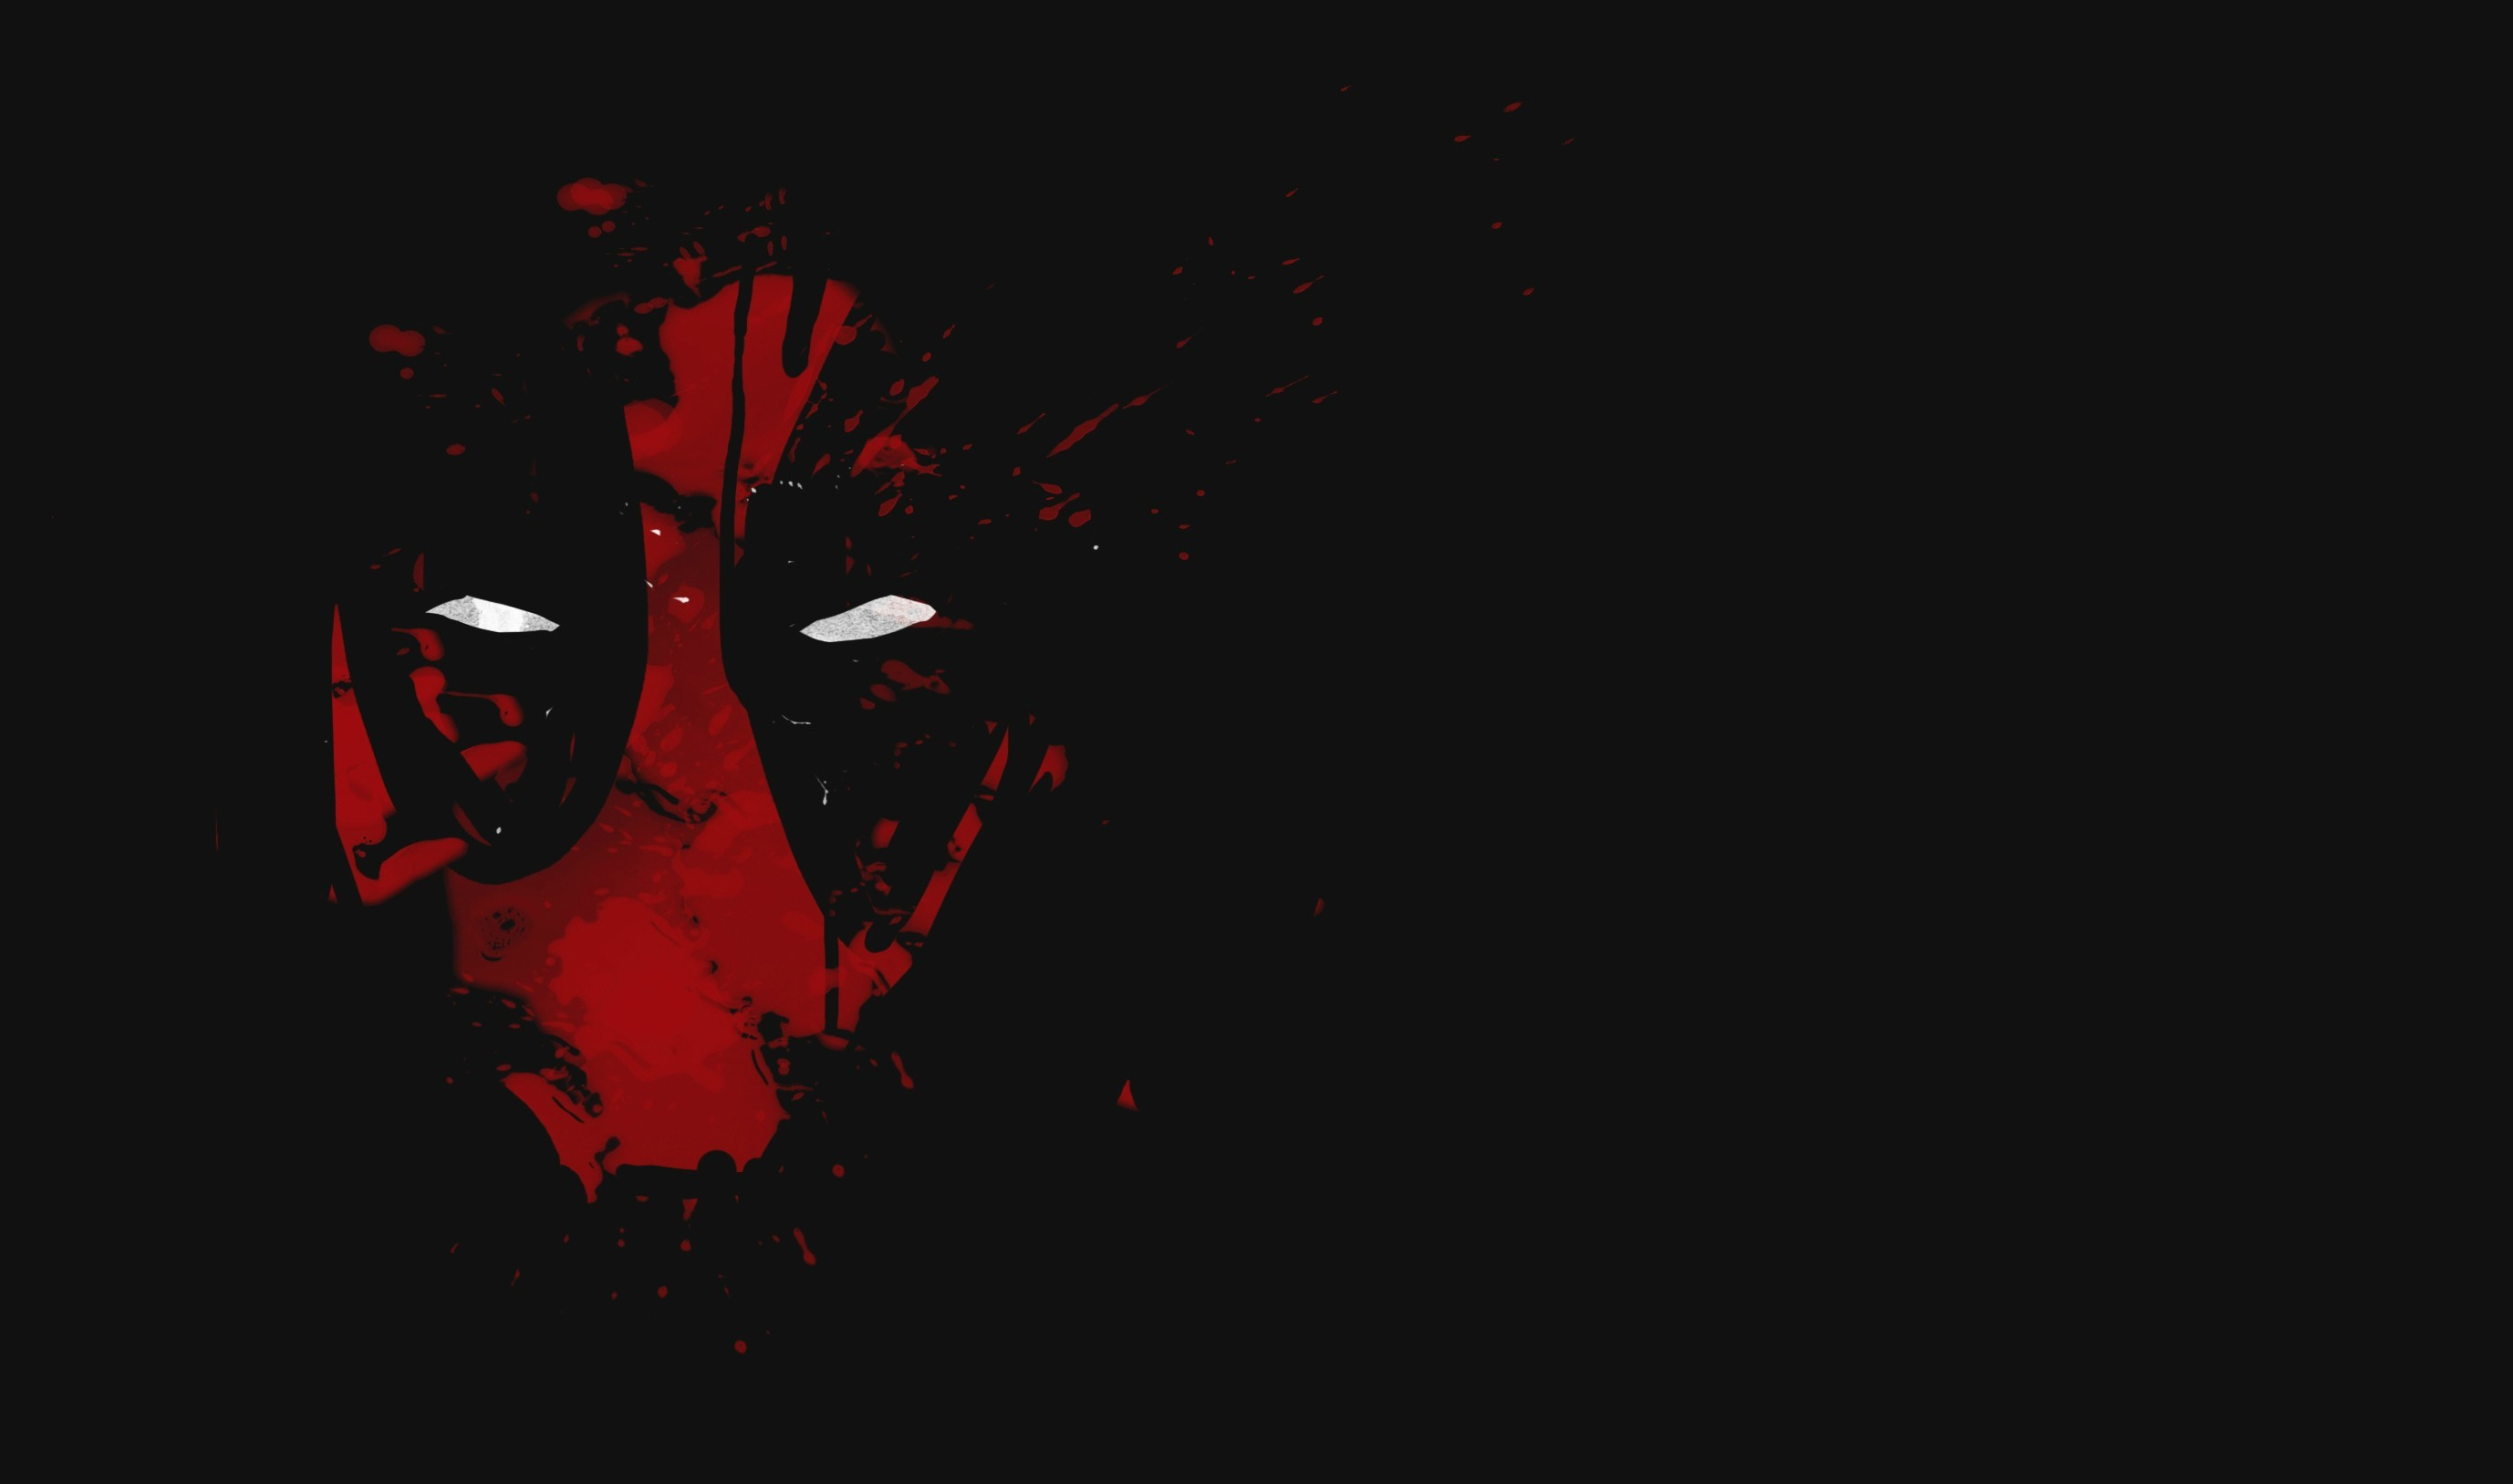 2755x1627 Deadpool movie Desktop